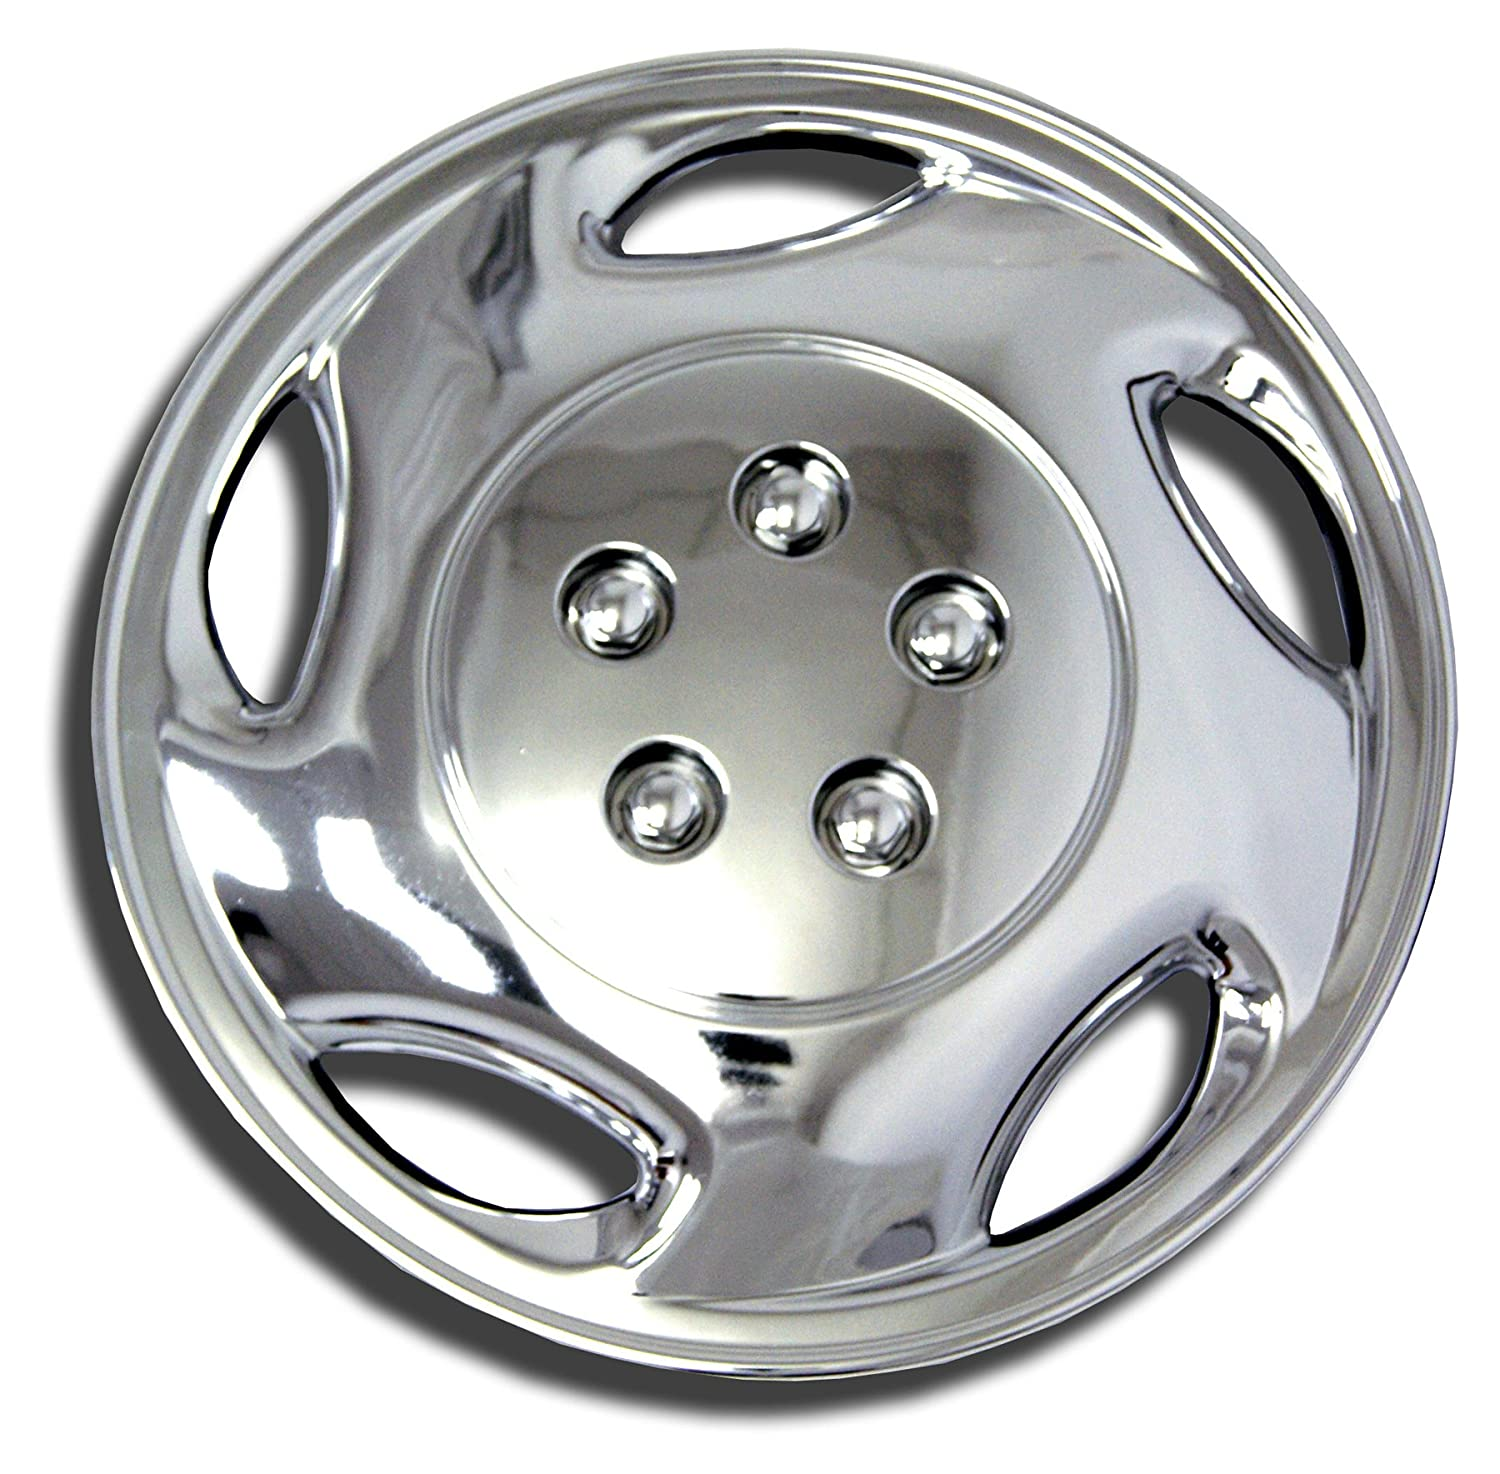 TuningPros WSC-941C15 Chrome Hubcaps Wheel Skin Cover 15-Inches Silver Set of 4